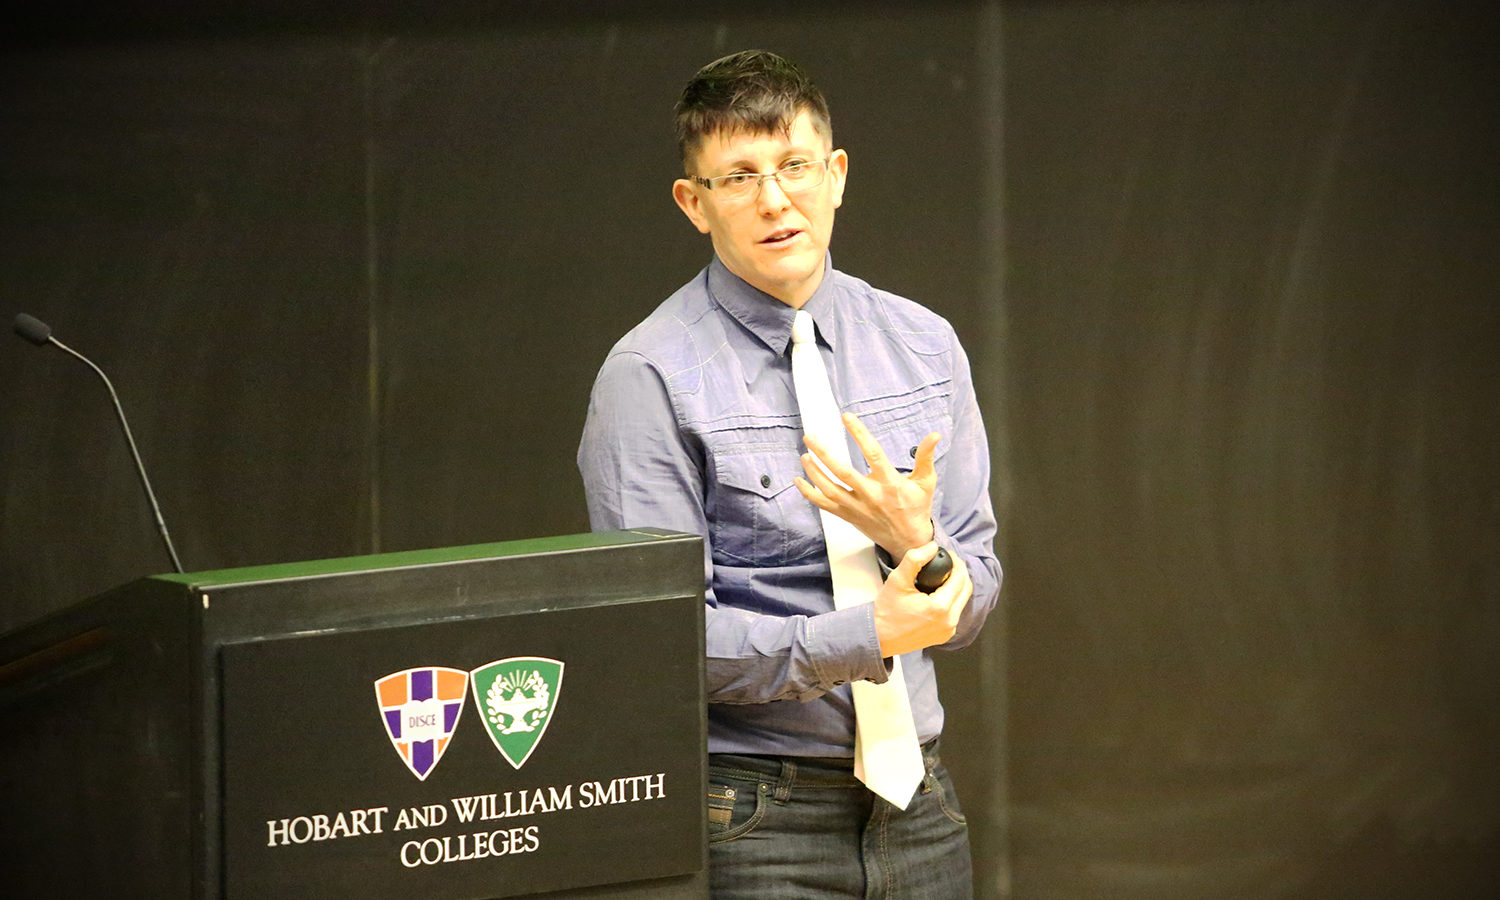 """Yoga Instructor Jacoby Ballard discusses the complexities of compassion during """"Compassion on Campus: Why, how, and for whom?"""" as part of the HWS Psychology Colloquium in the Geneva Room."""